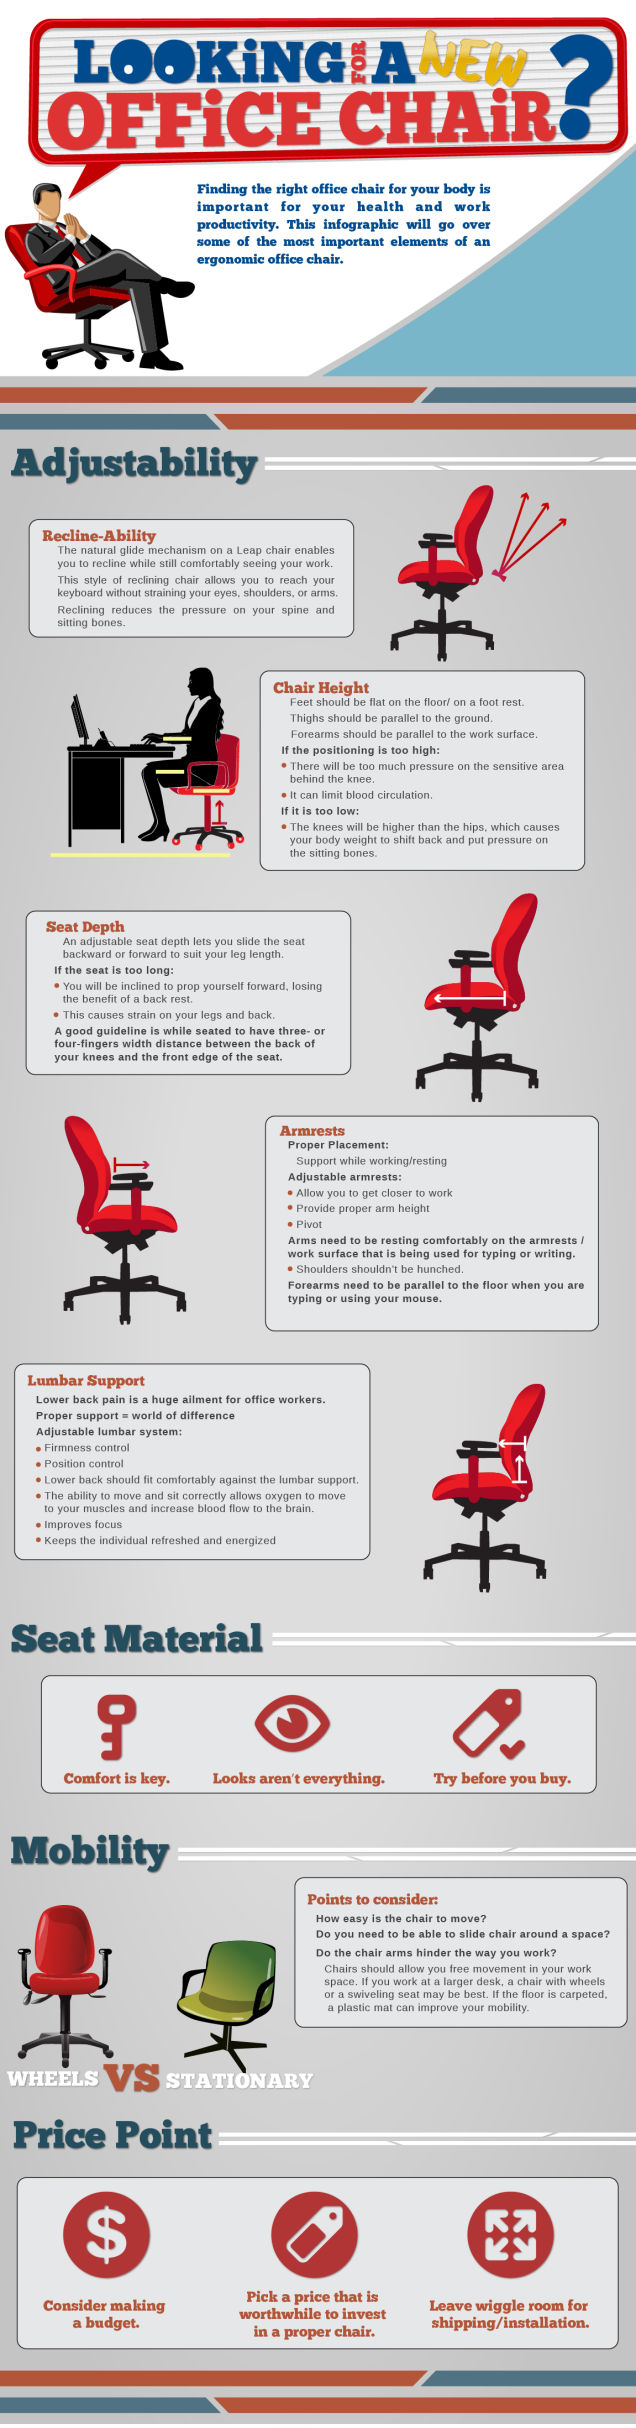 Office Chair ergonomics